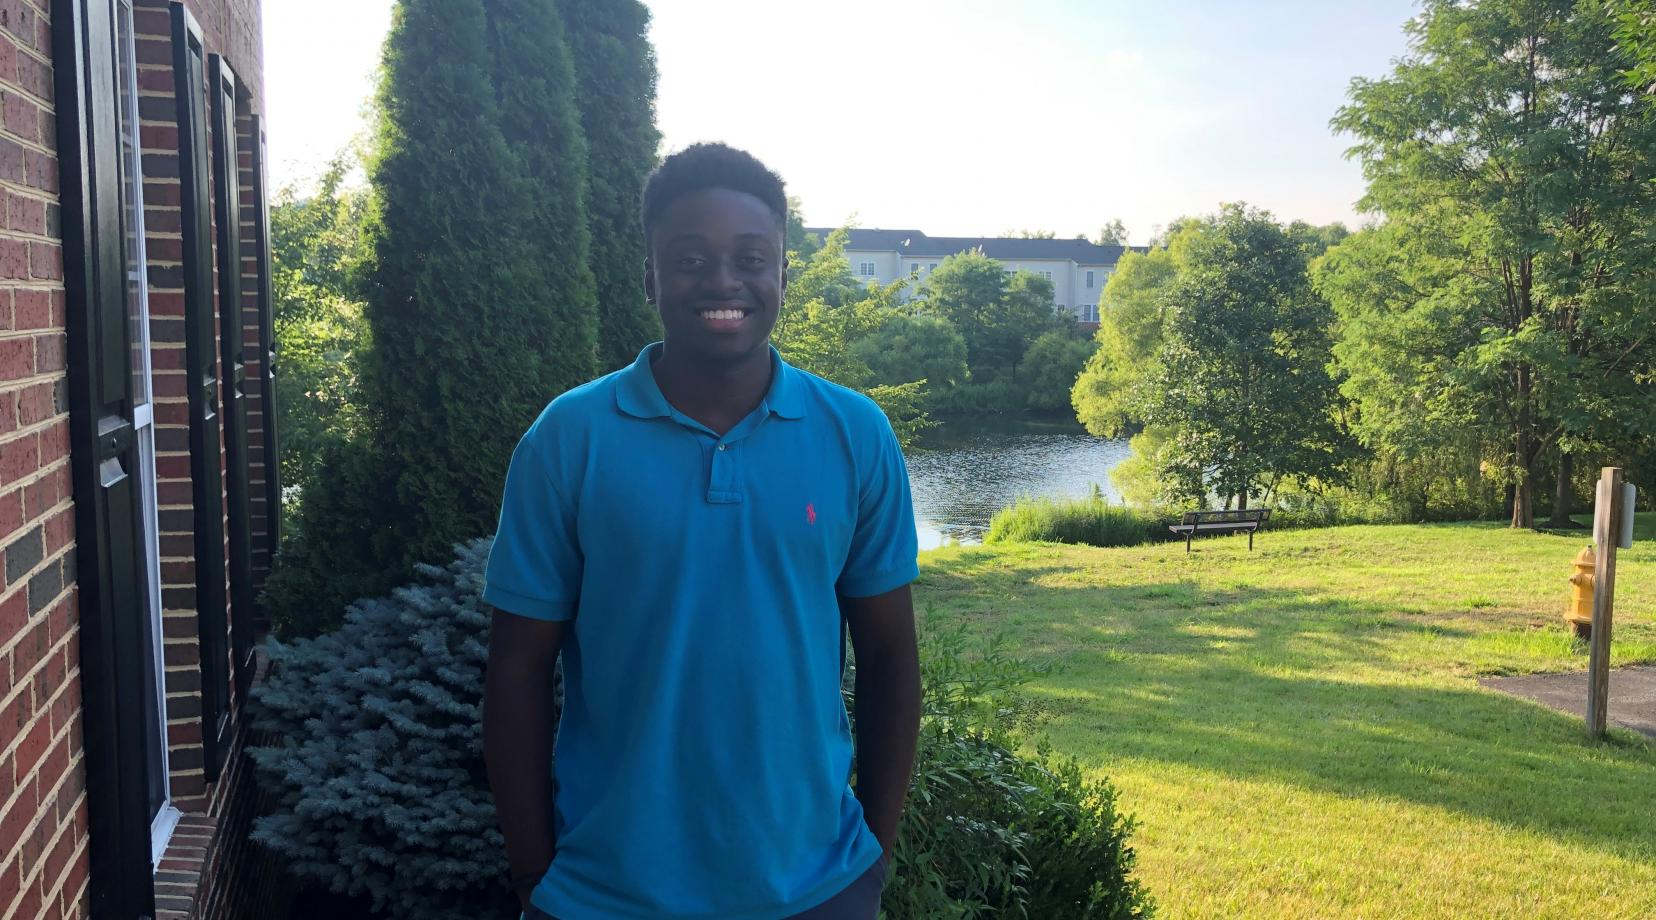 <p>Gregory F. Moore, a 3.94 GPA College of Business undergraduate, has been selected by Facebook to attend its HBCU Business Student Summit this summer.</p>